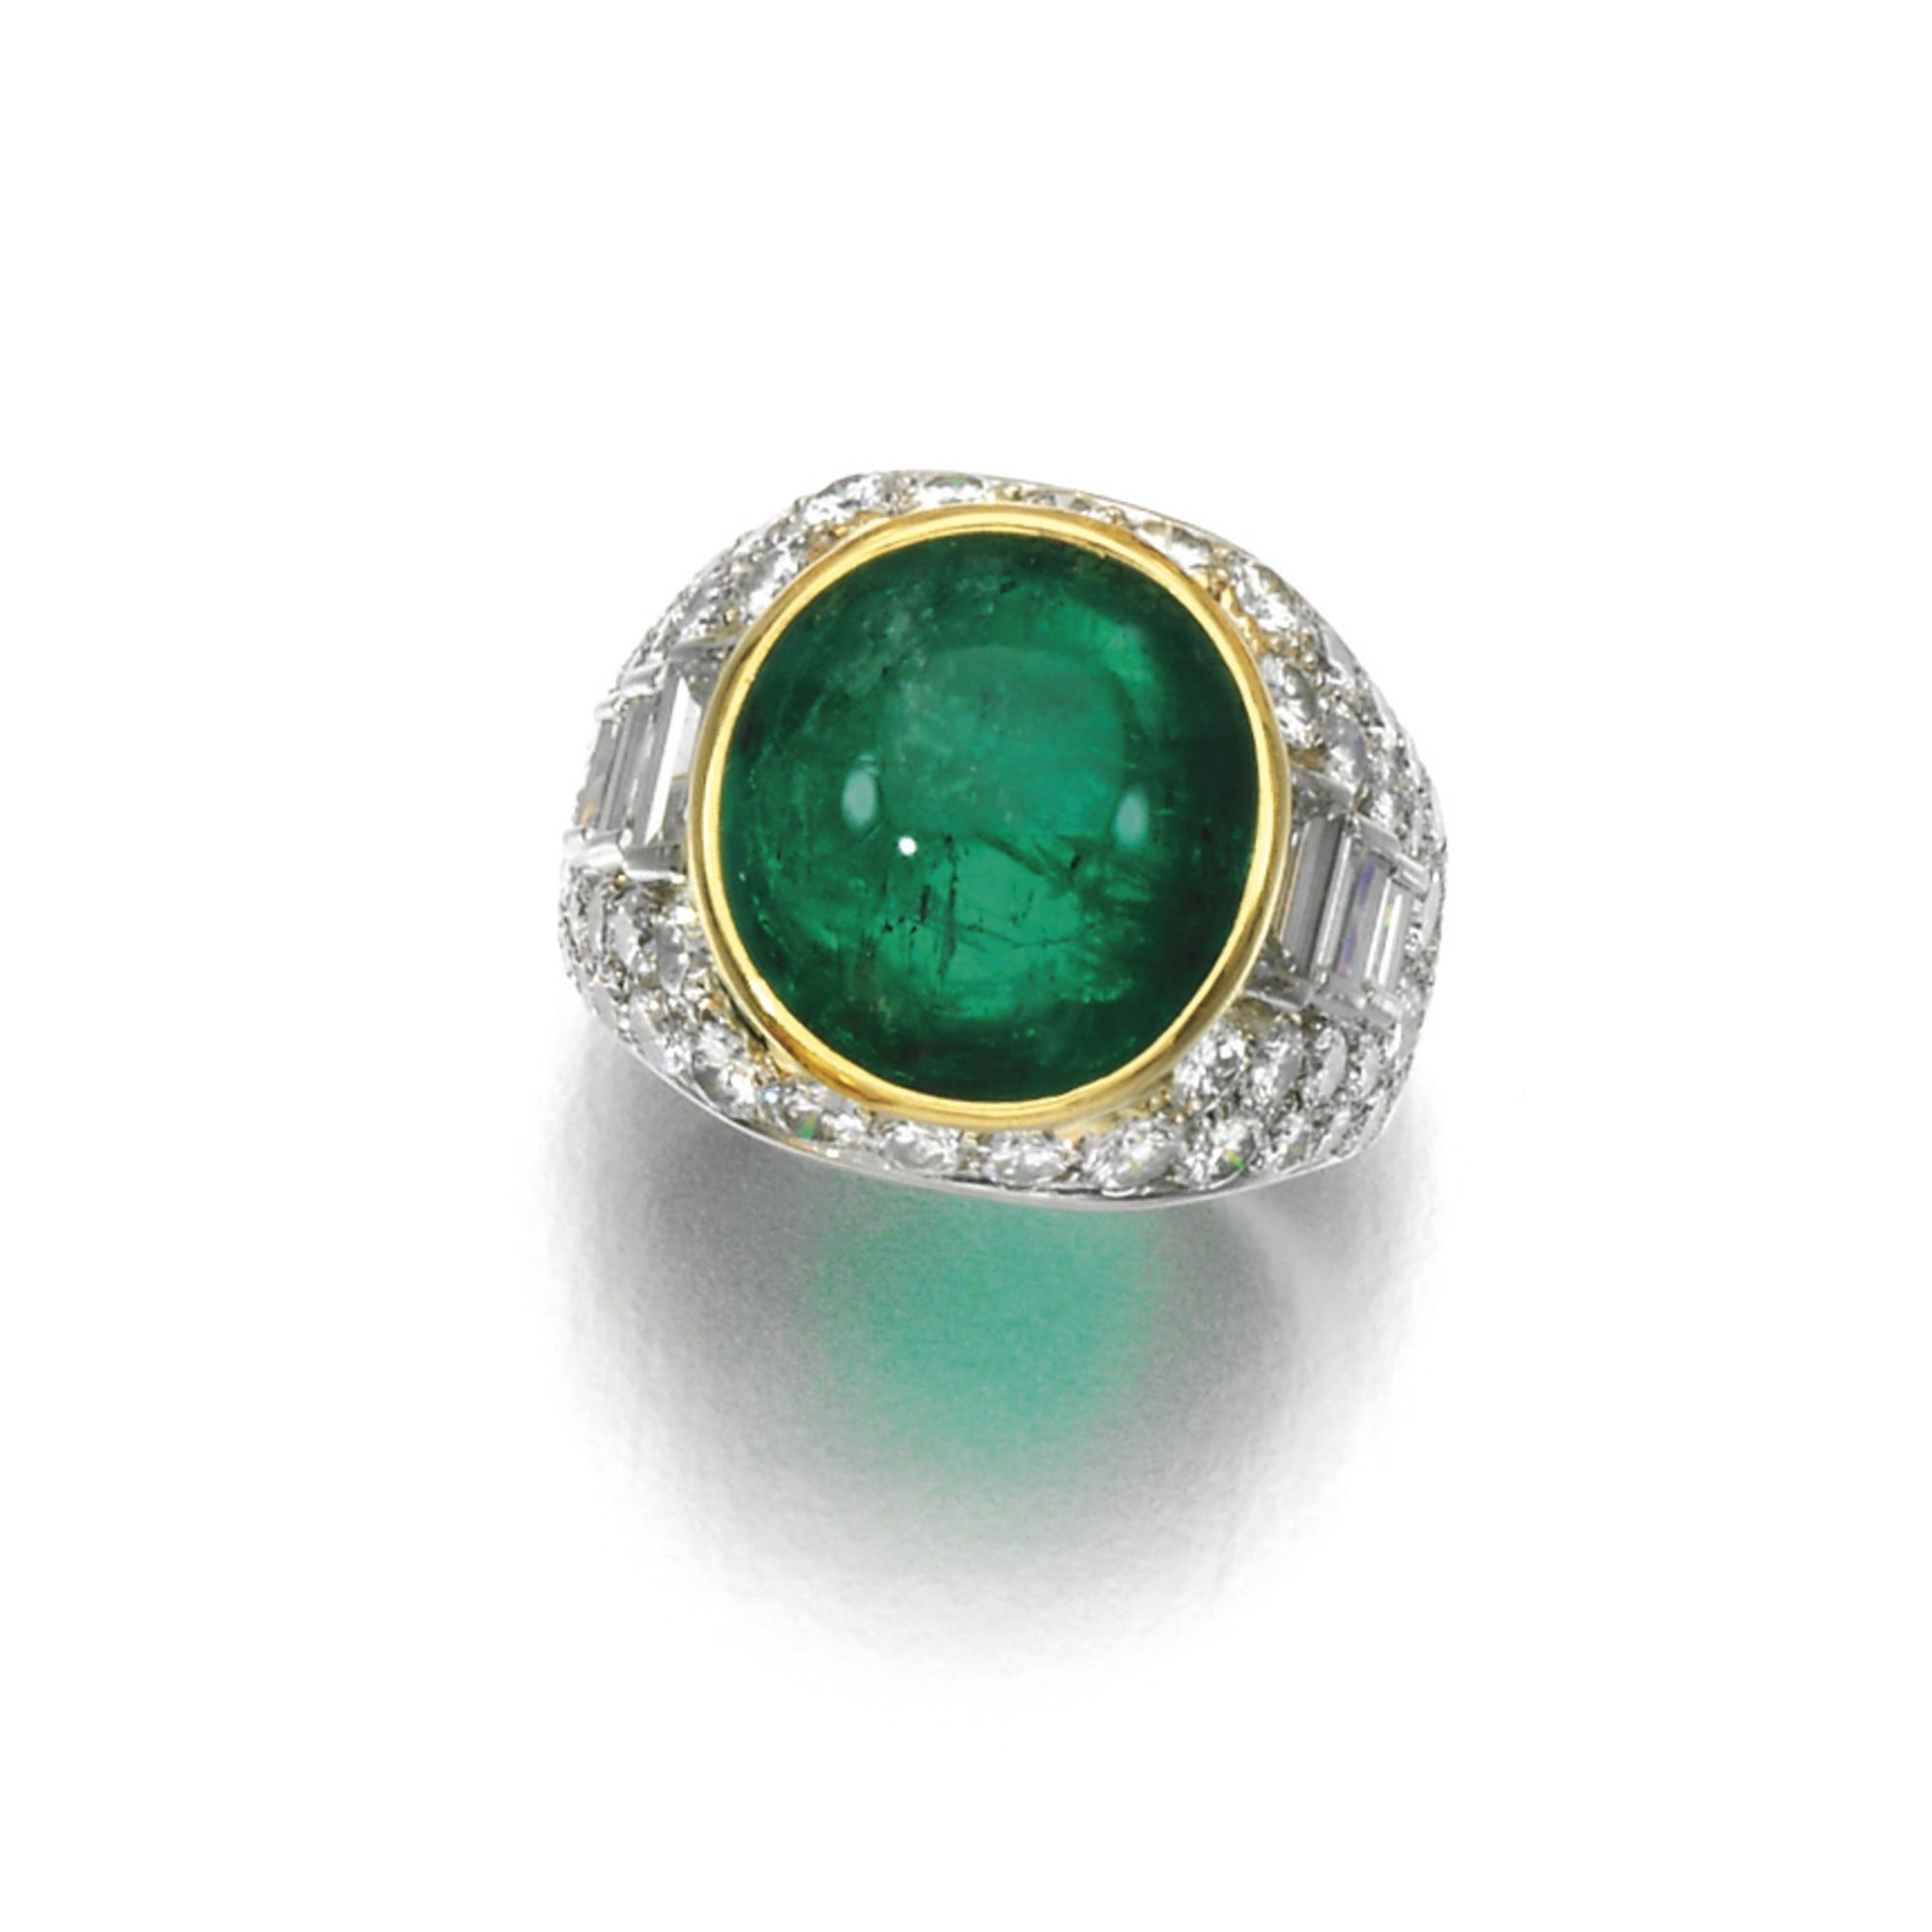 emerald and diamond ring bulgari of bomb design colletset with a cabochon